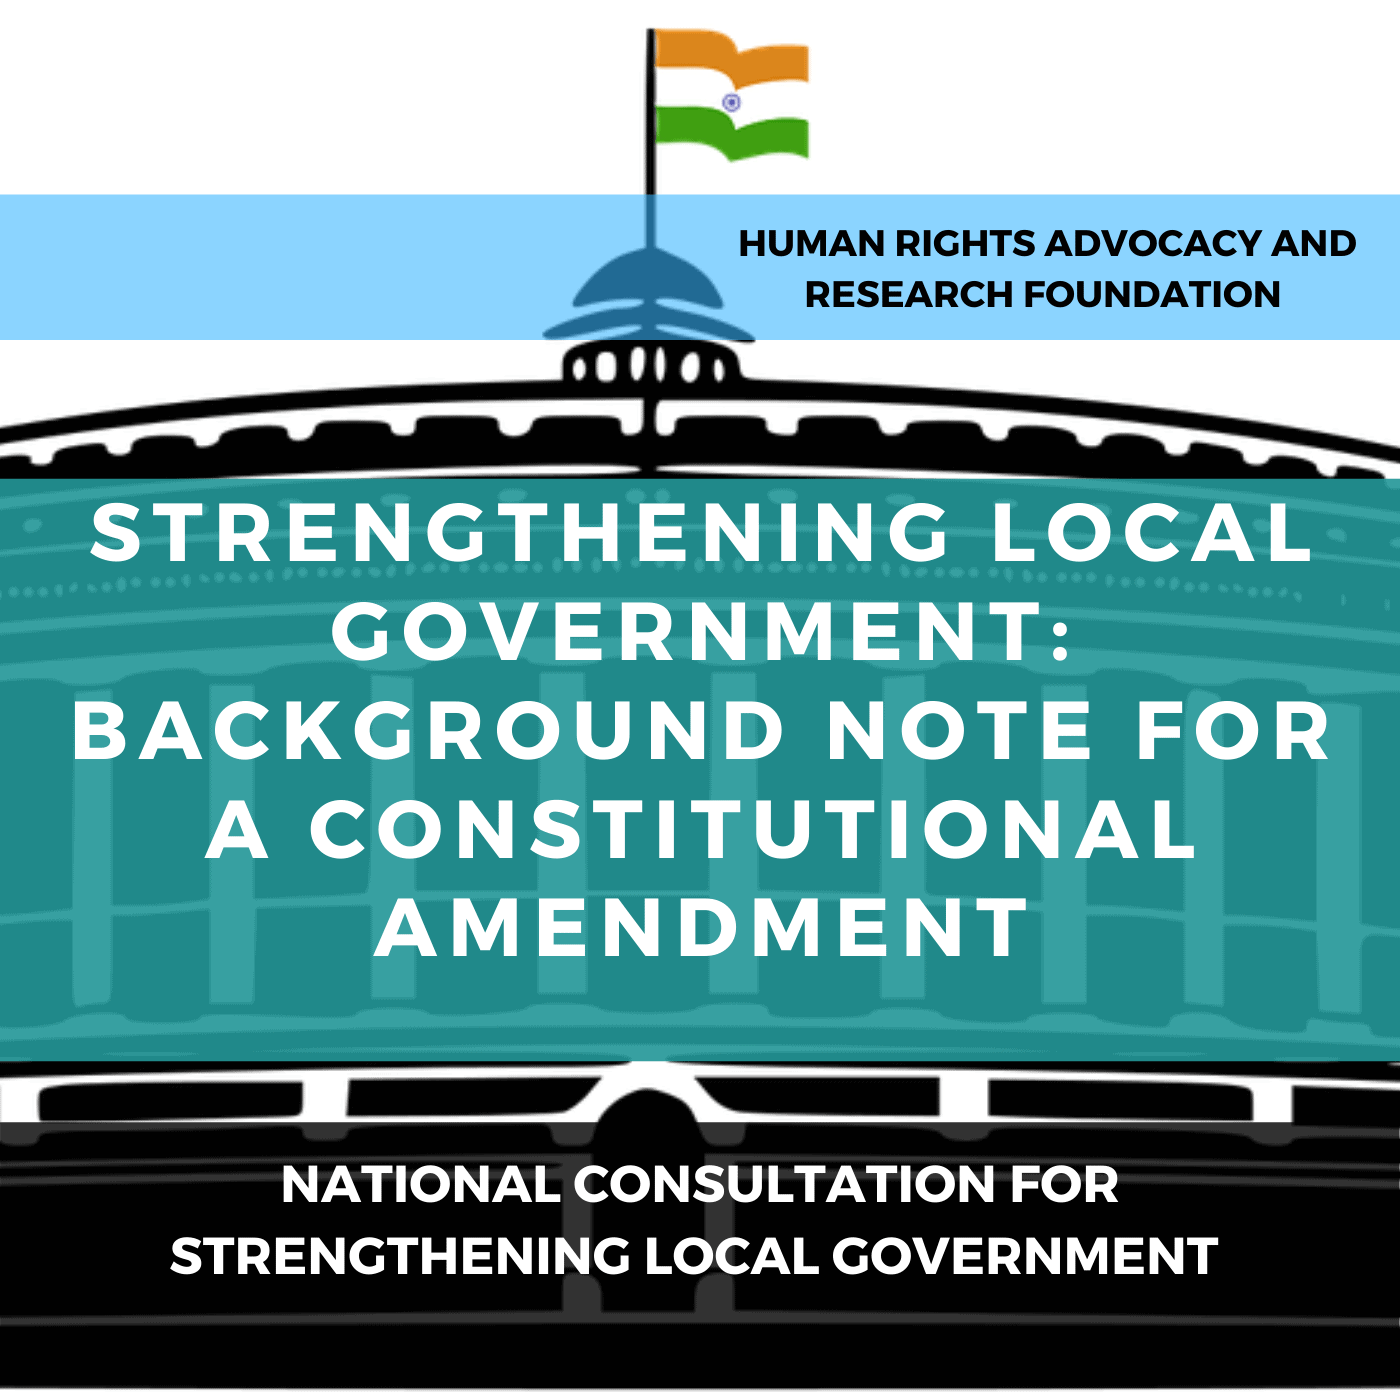 Strengthening Local Government: Background note for a Constitutional Amendment